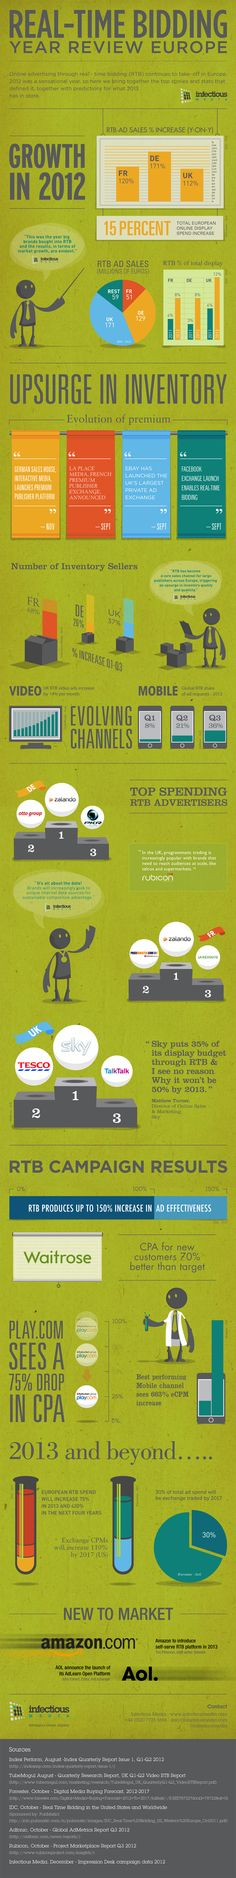 INFOGRAPHIC: REAL-TIME BIDDING YEAR REVIEW EUROPE #RTB